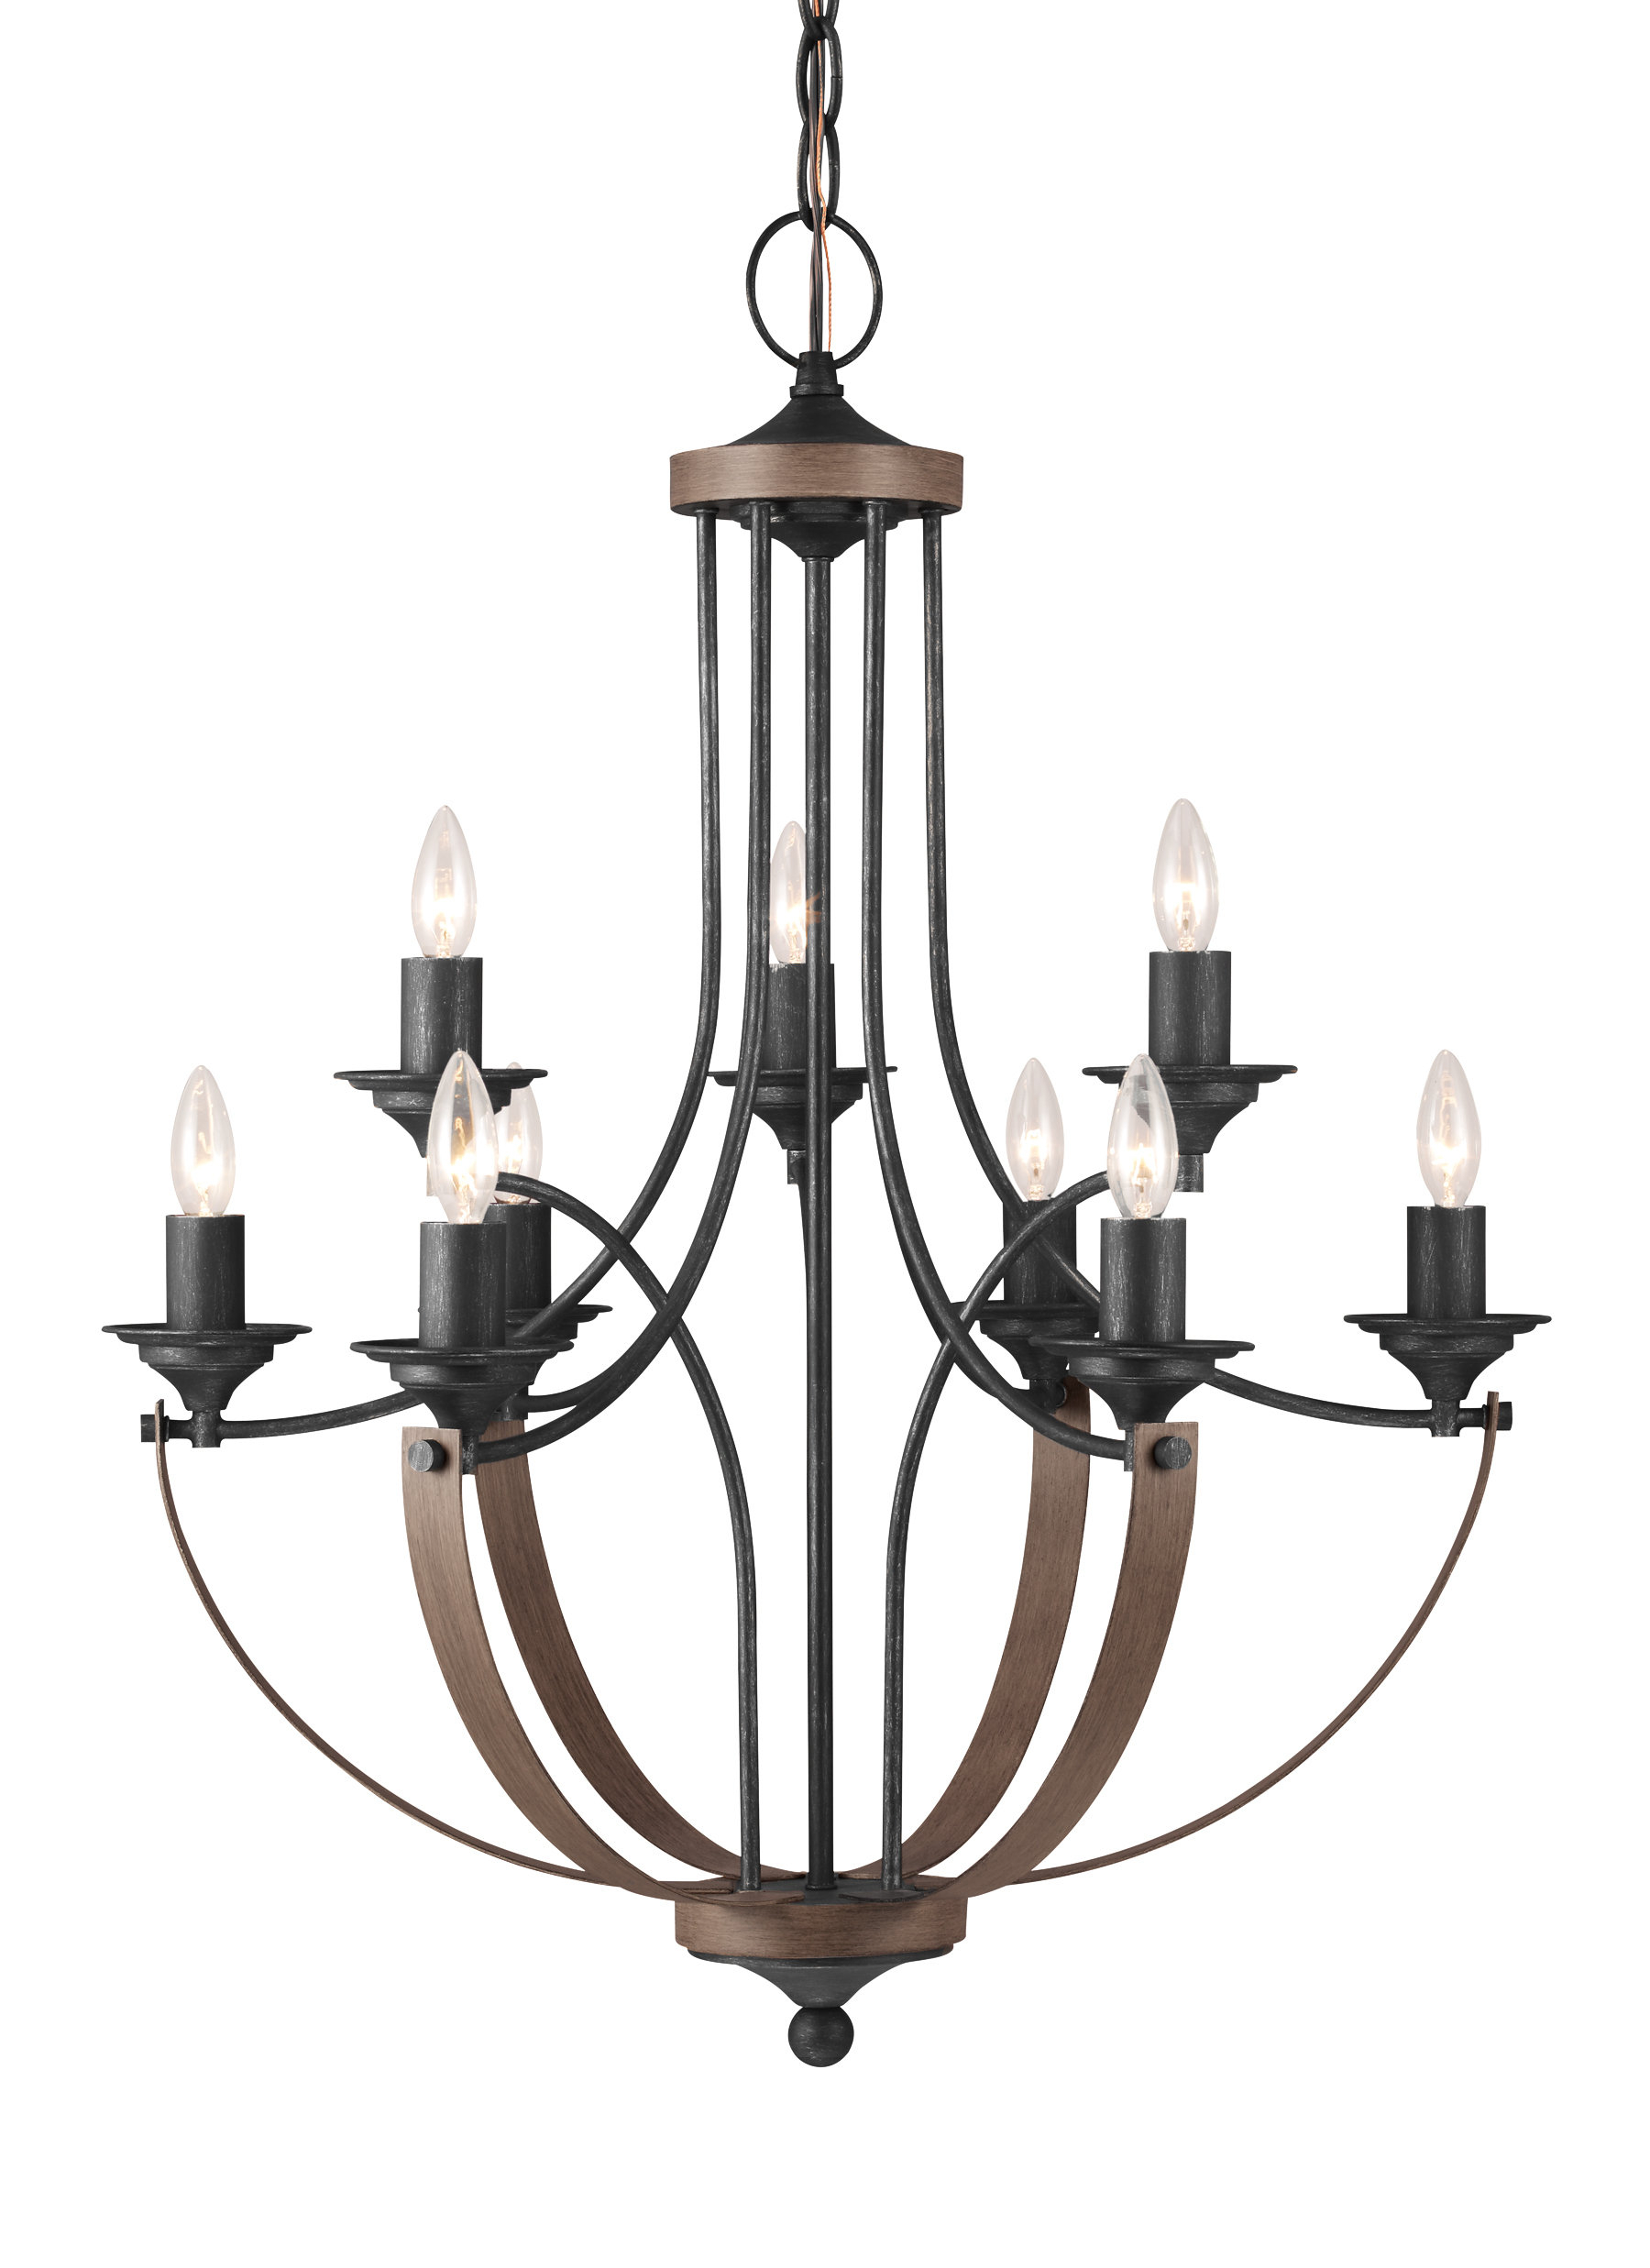 Camilla 9 Light Candle Style Chandelier With Regard To Newest Giverny 9 Light Candle Style Chandeliers (Gallery 9 of 20)